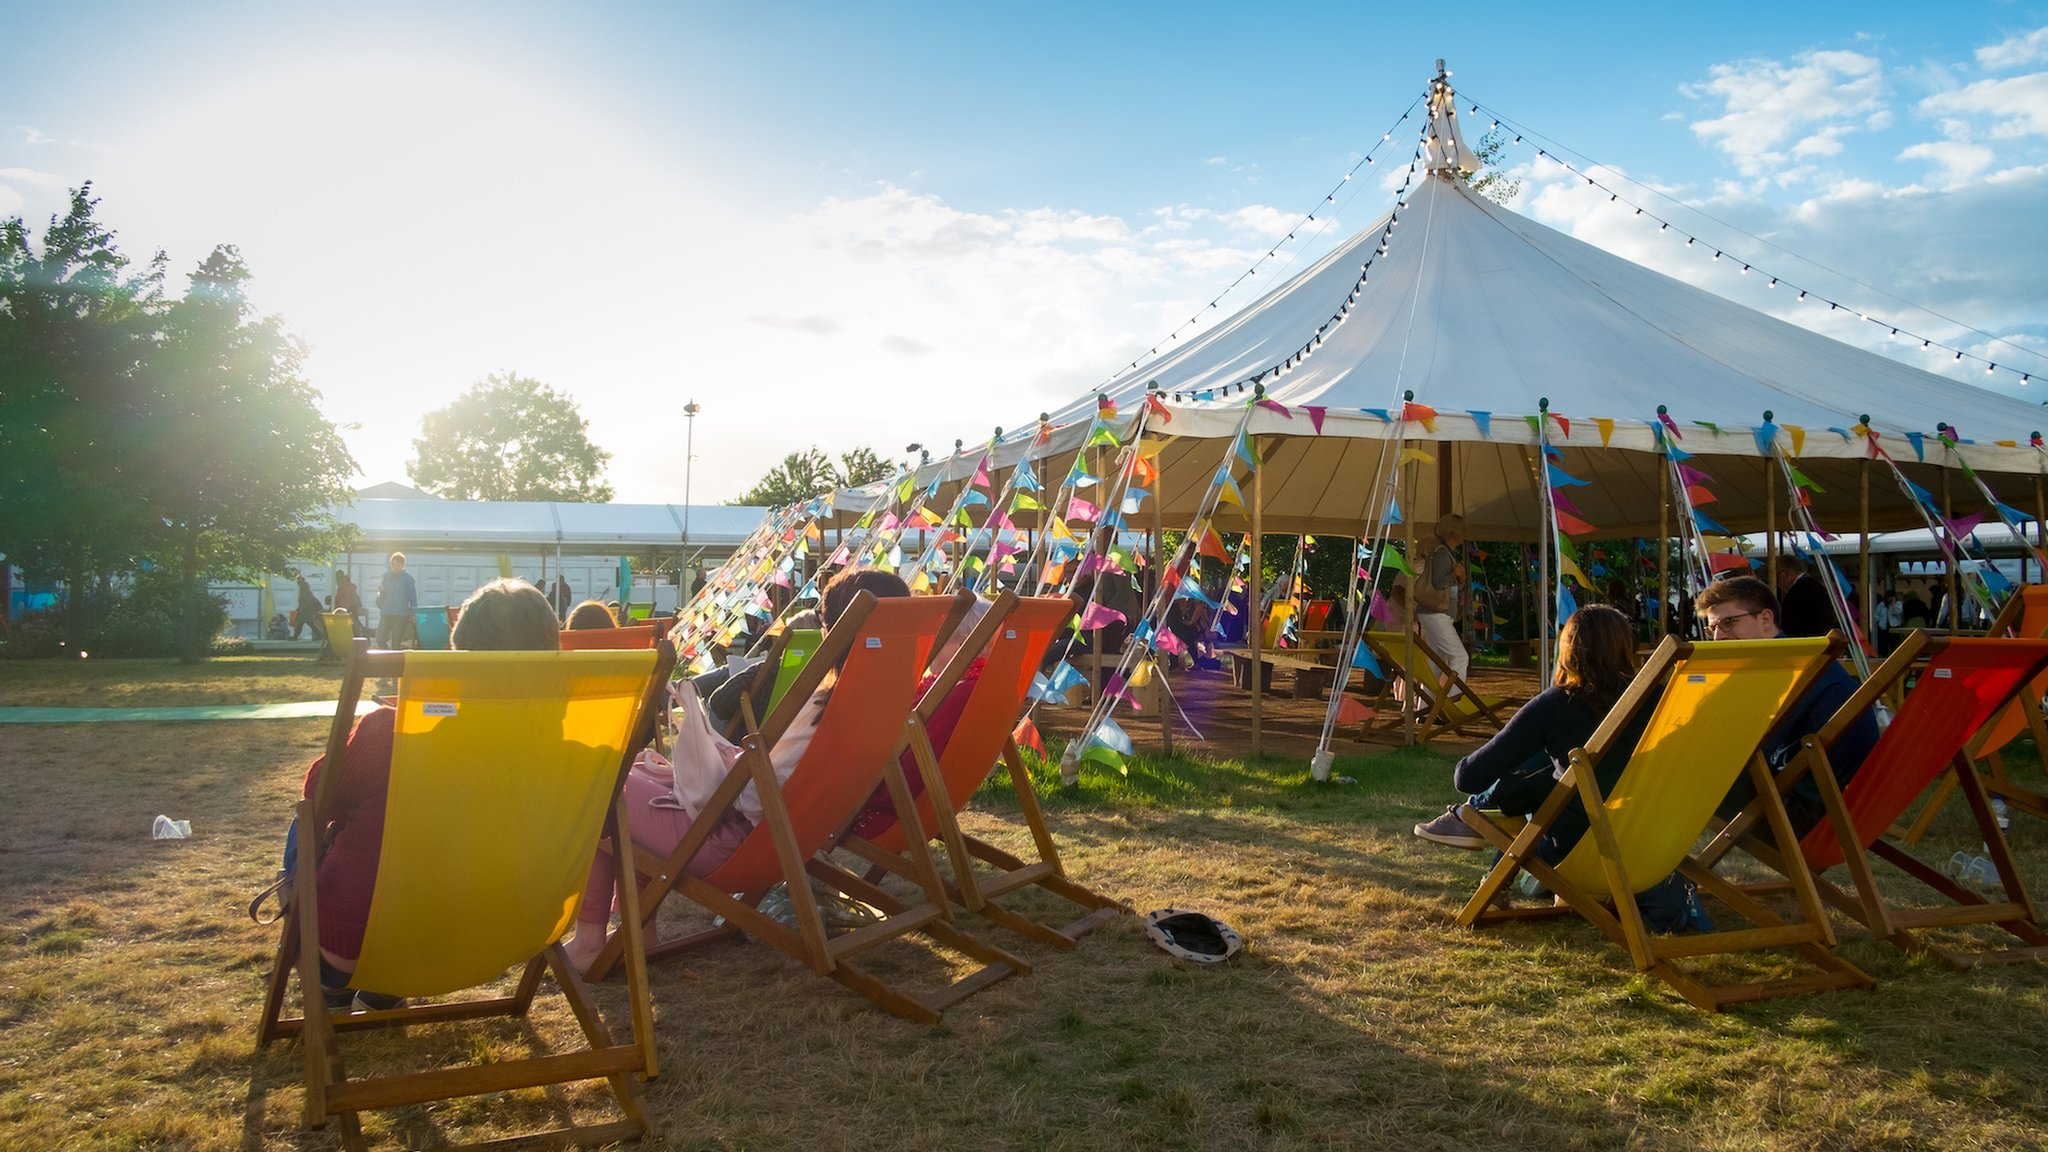 The Hay Festival